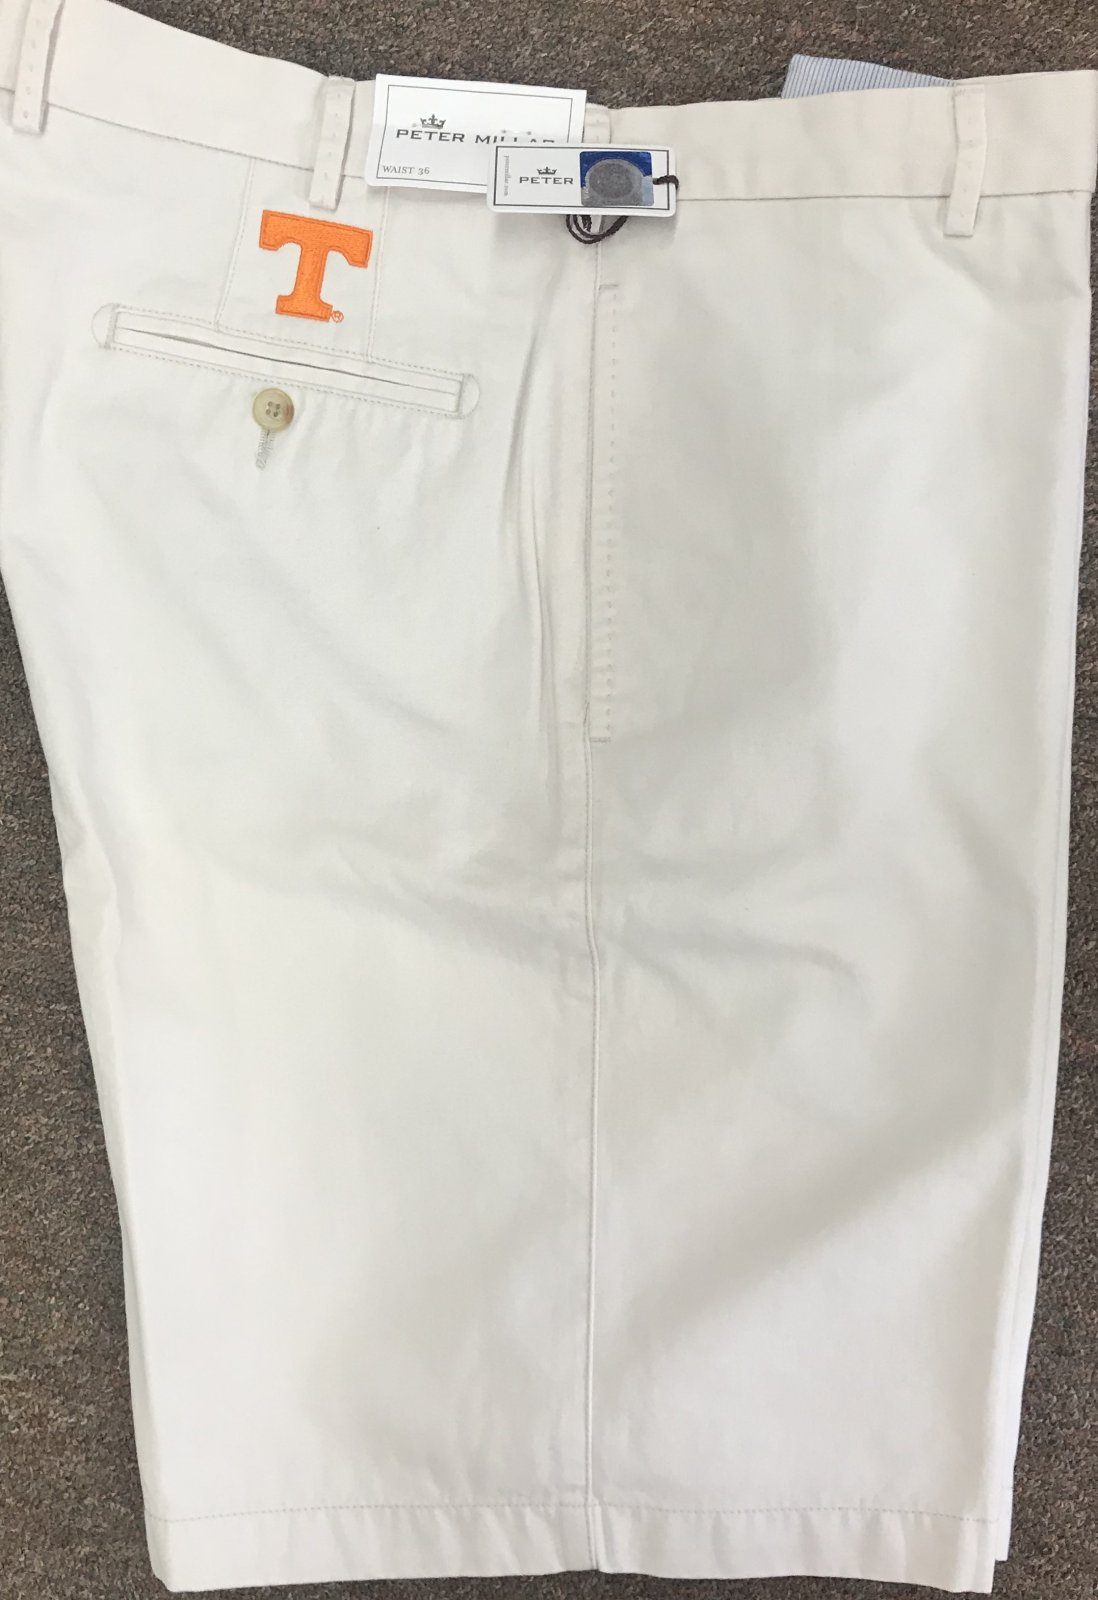 Peter Millar UT Shorts